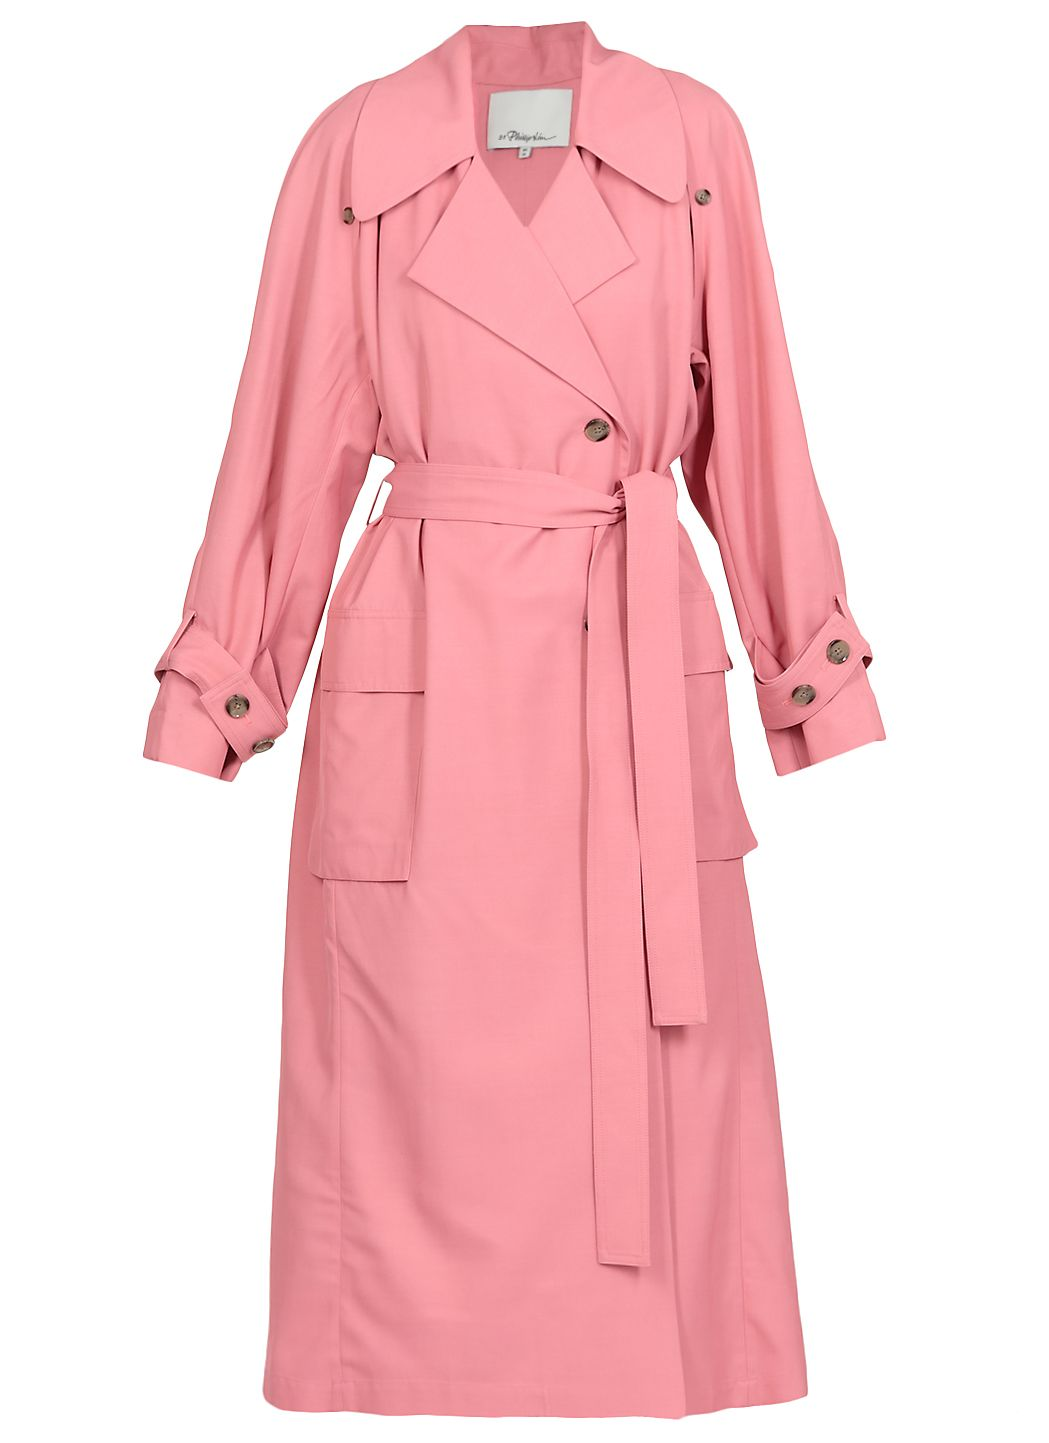 Wool and viscose blend long raincoat